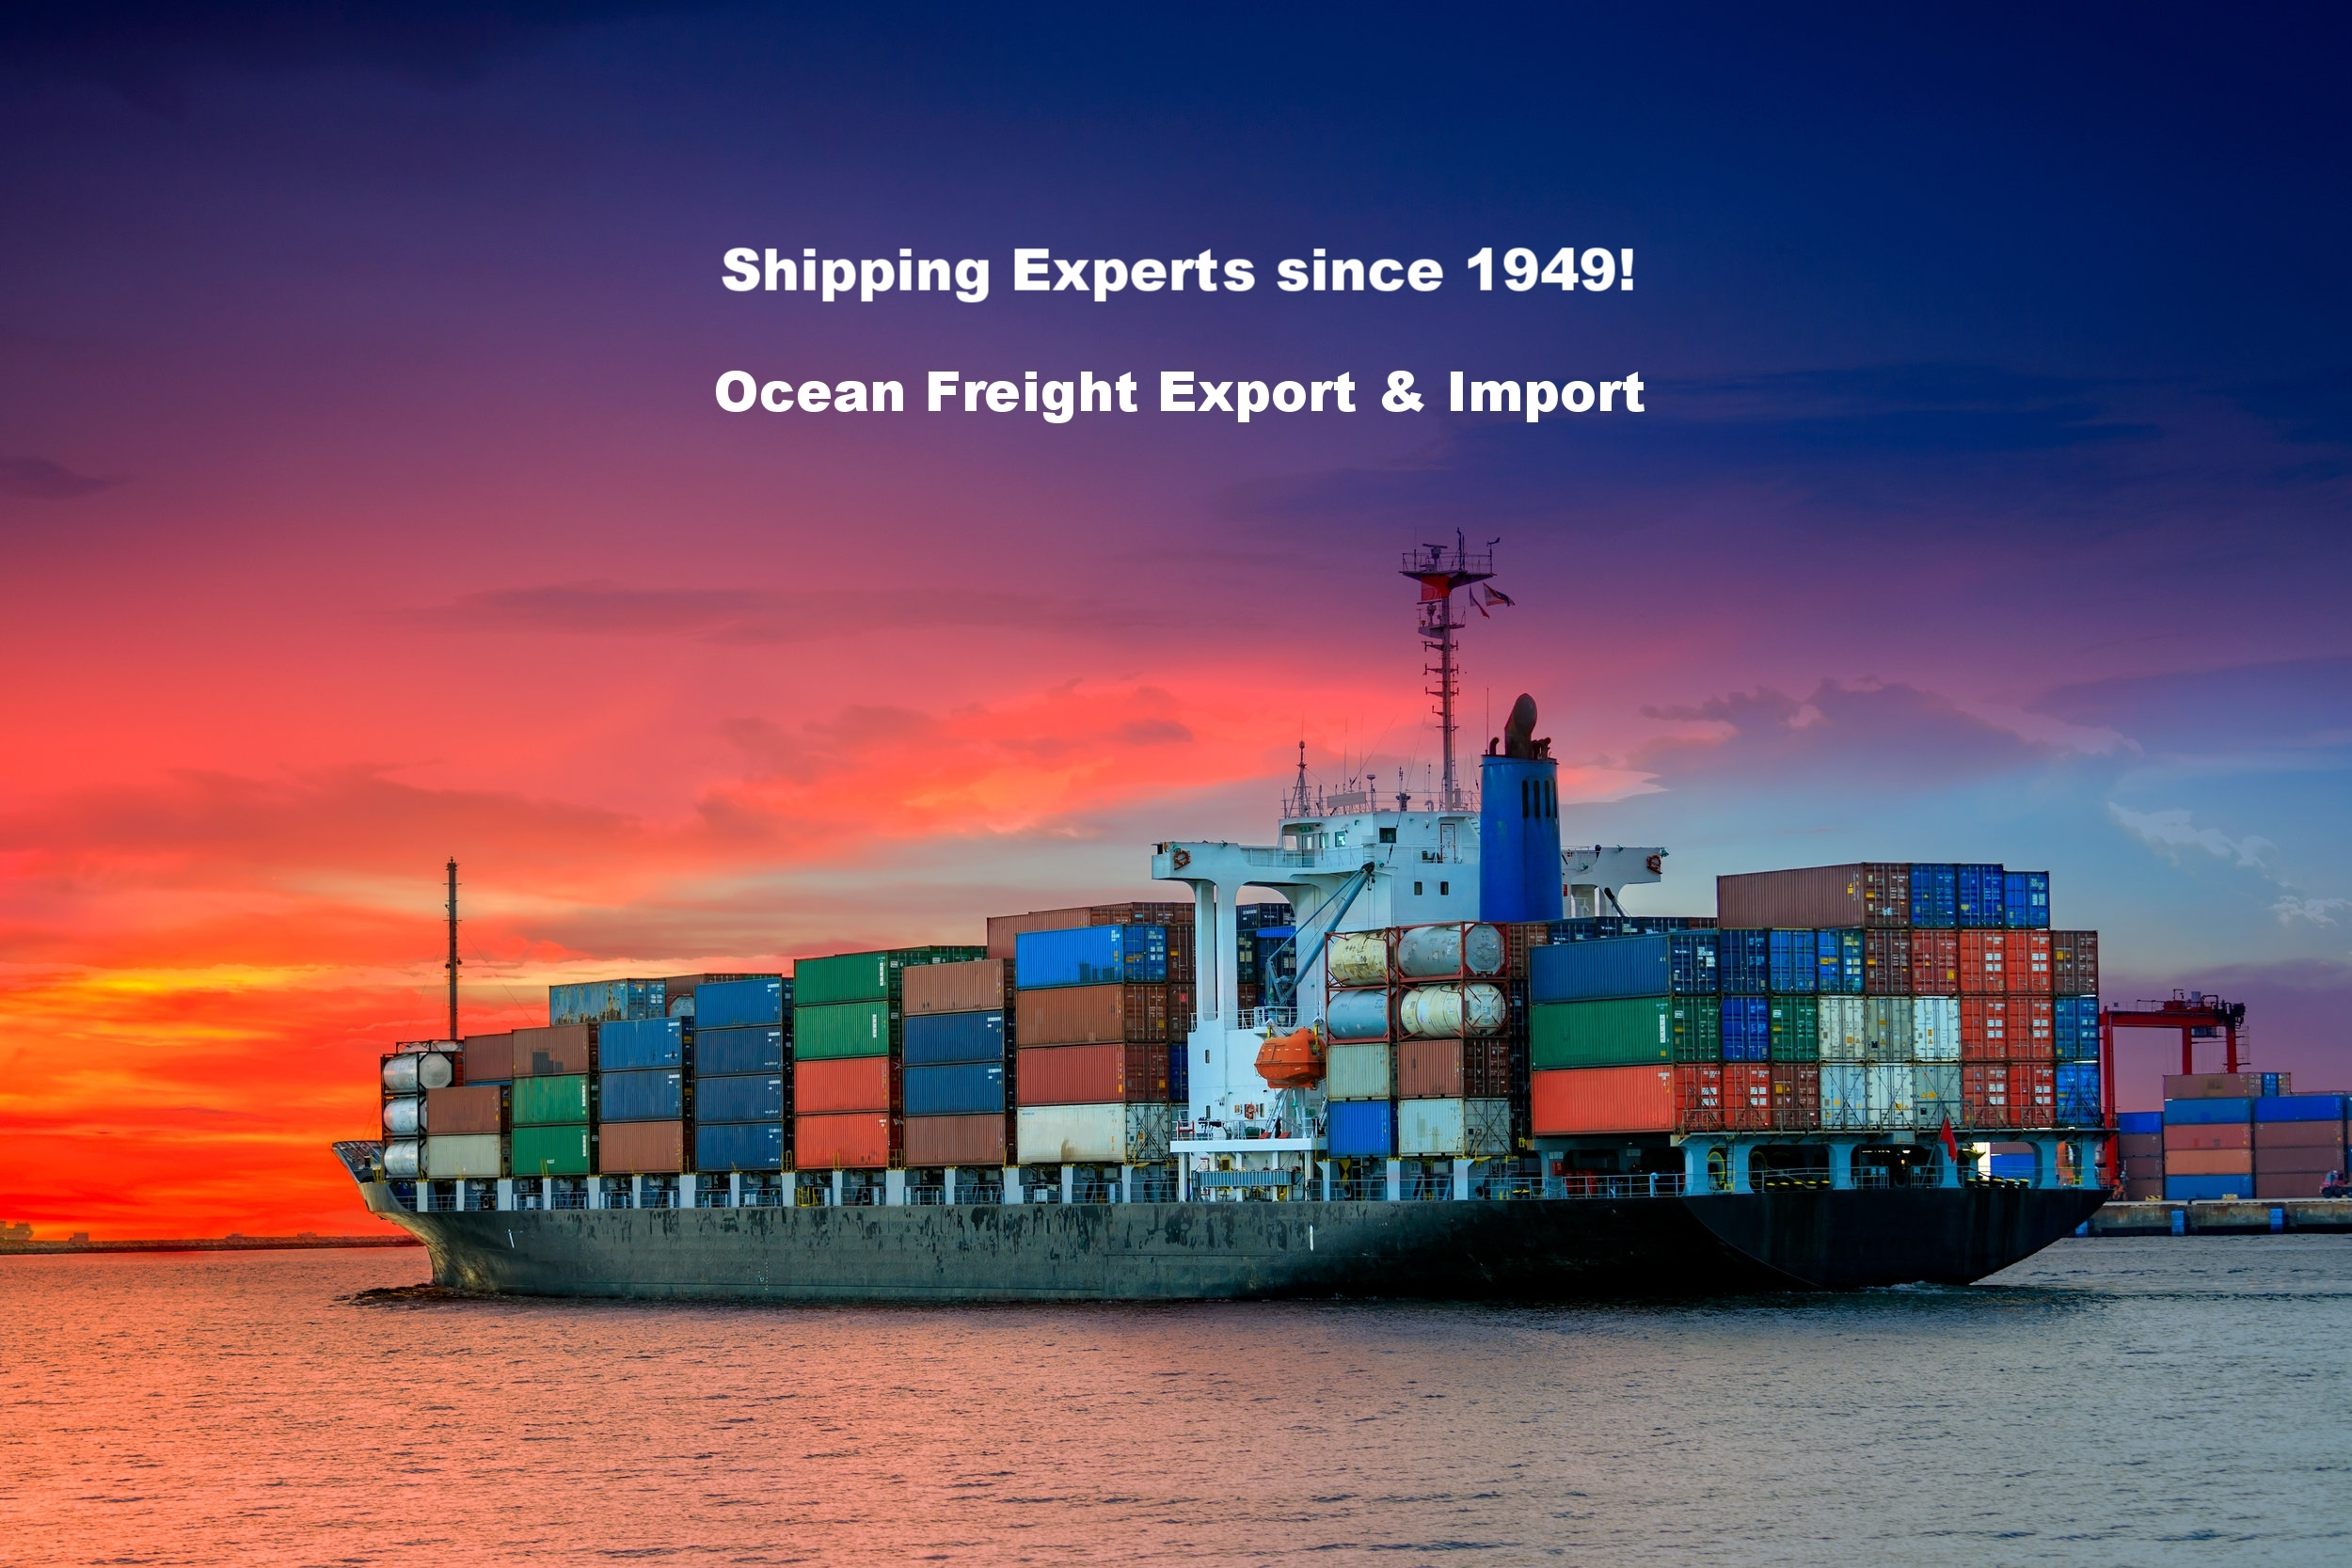 Marine Forwarding Company of Virginia